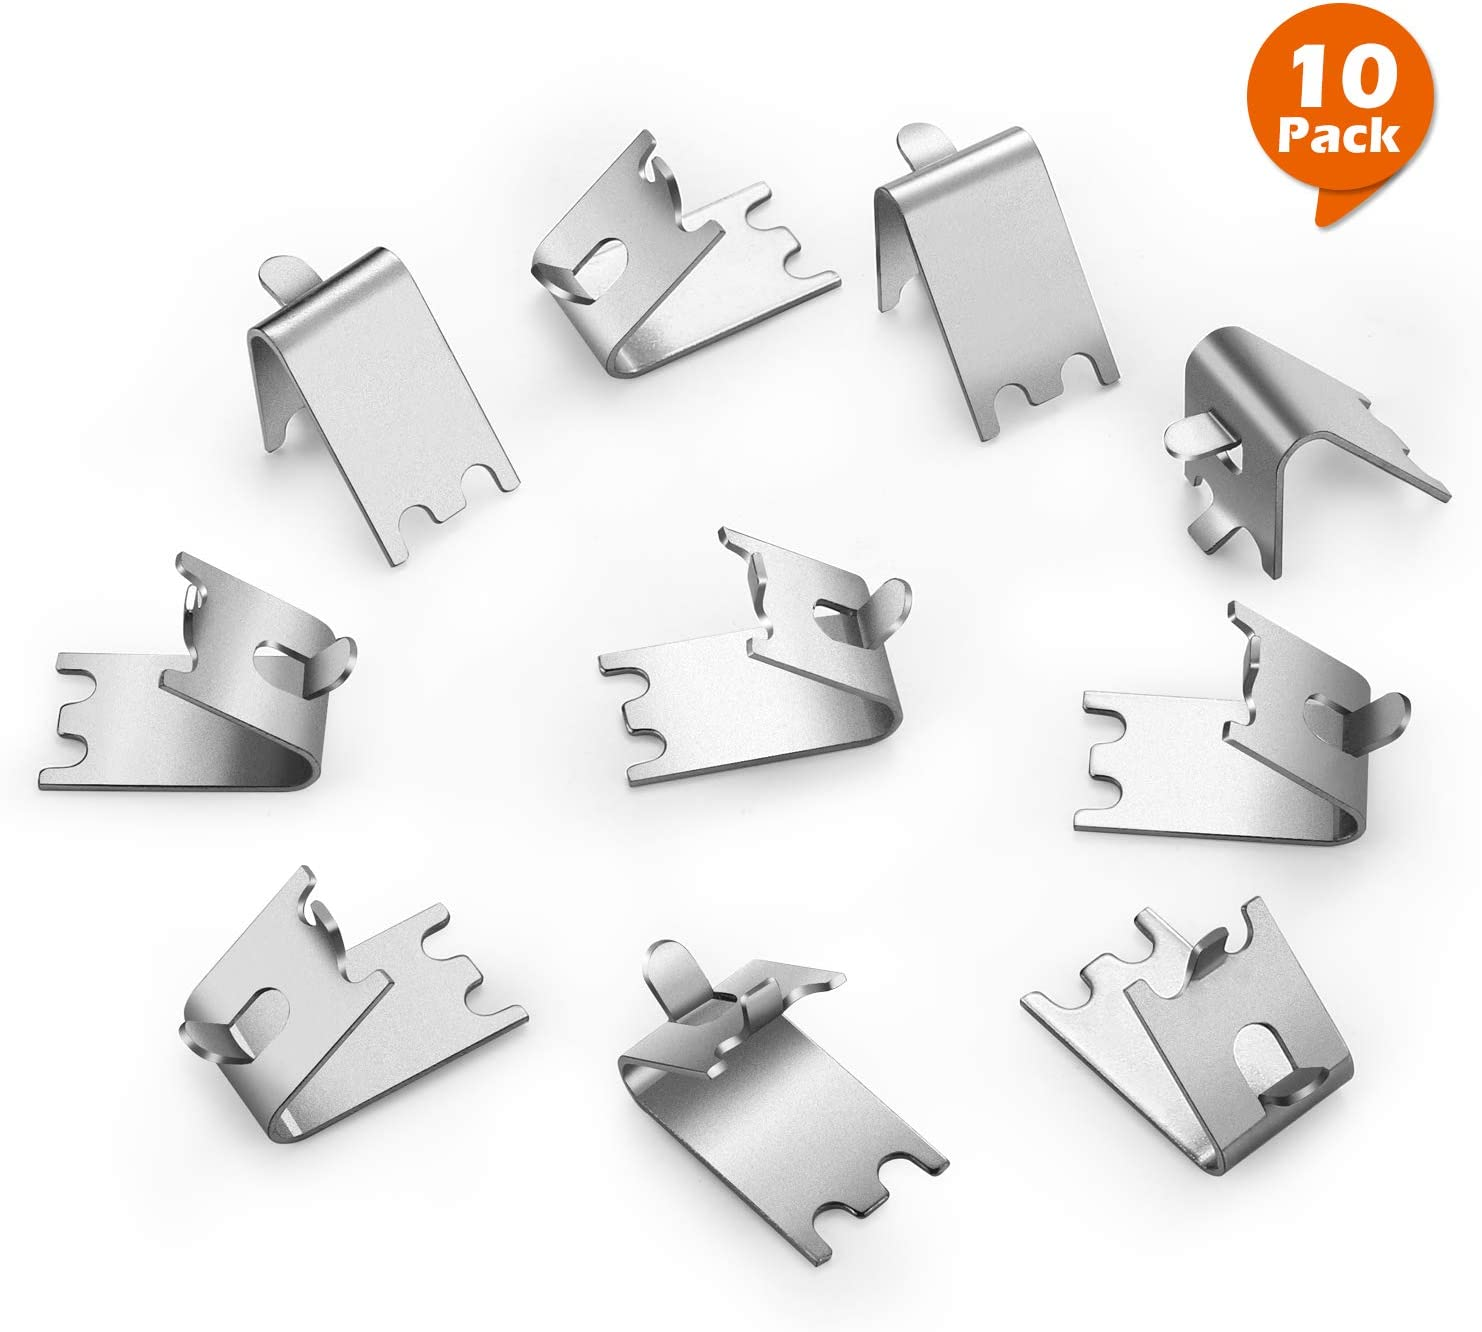 HK Freezer Shelf Clip, Fridge Cooler Shelf Support, Replacement Shelf Square Buckles Clips, Stainless Steel Hooks Shelf Clip for Refrigerator (10 Pcs)